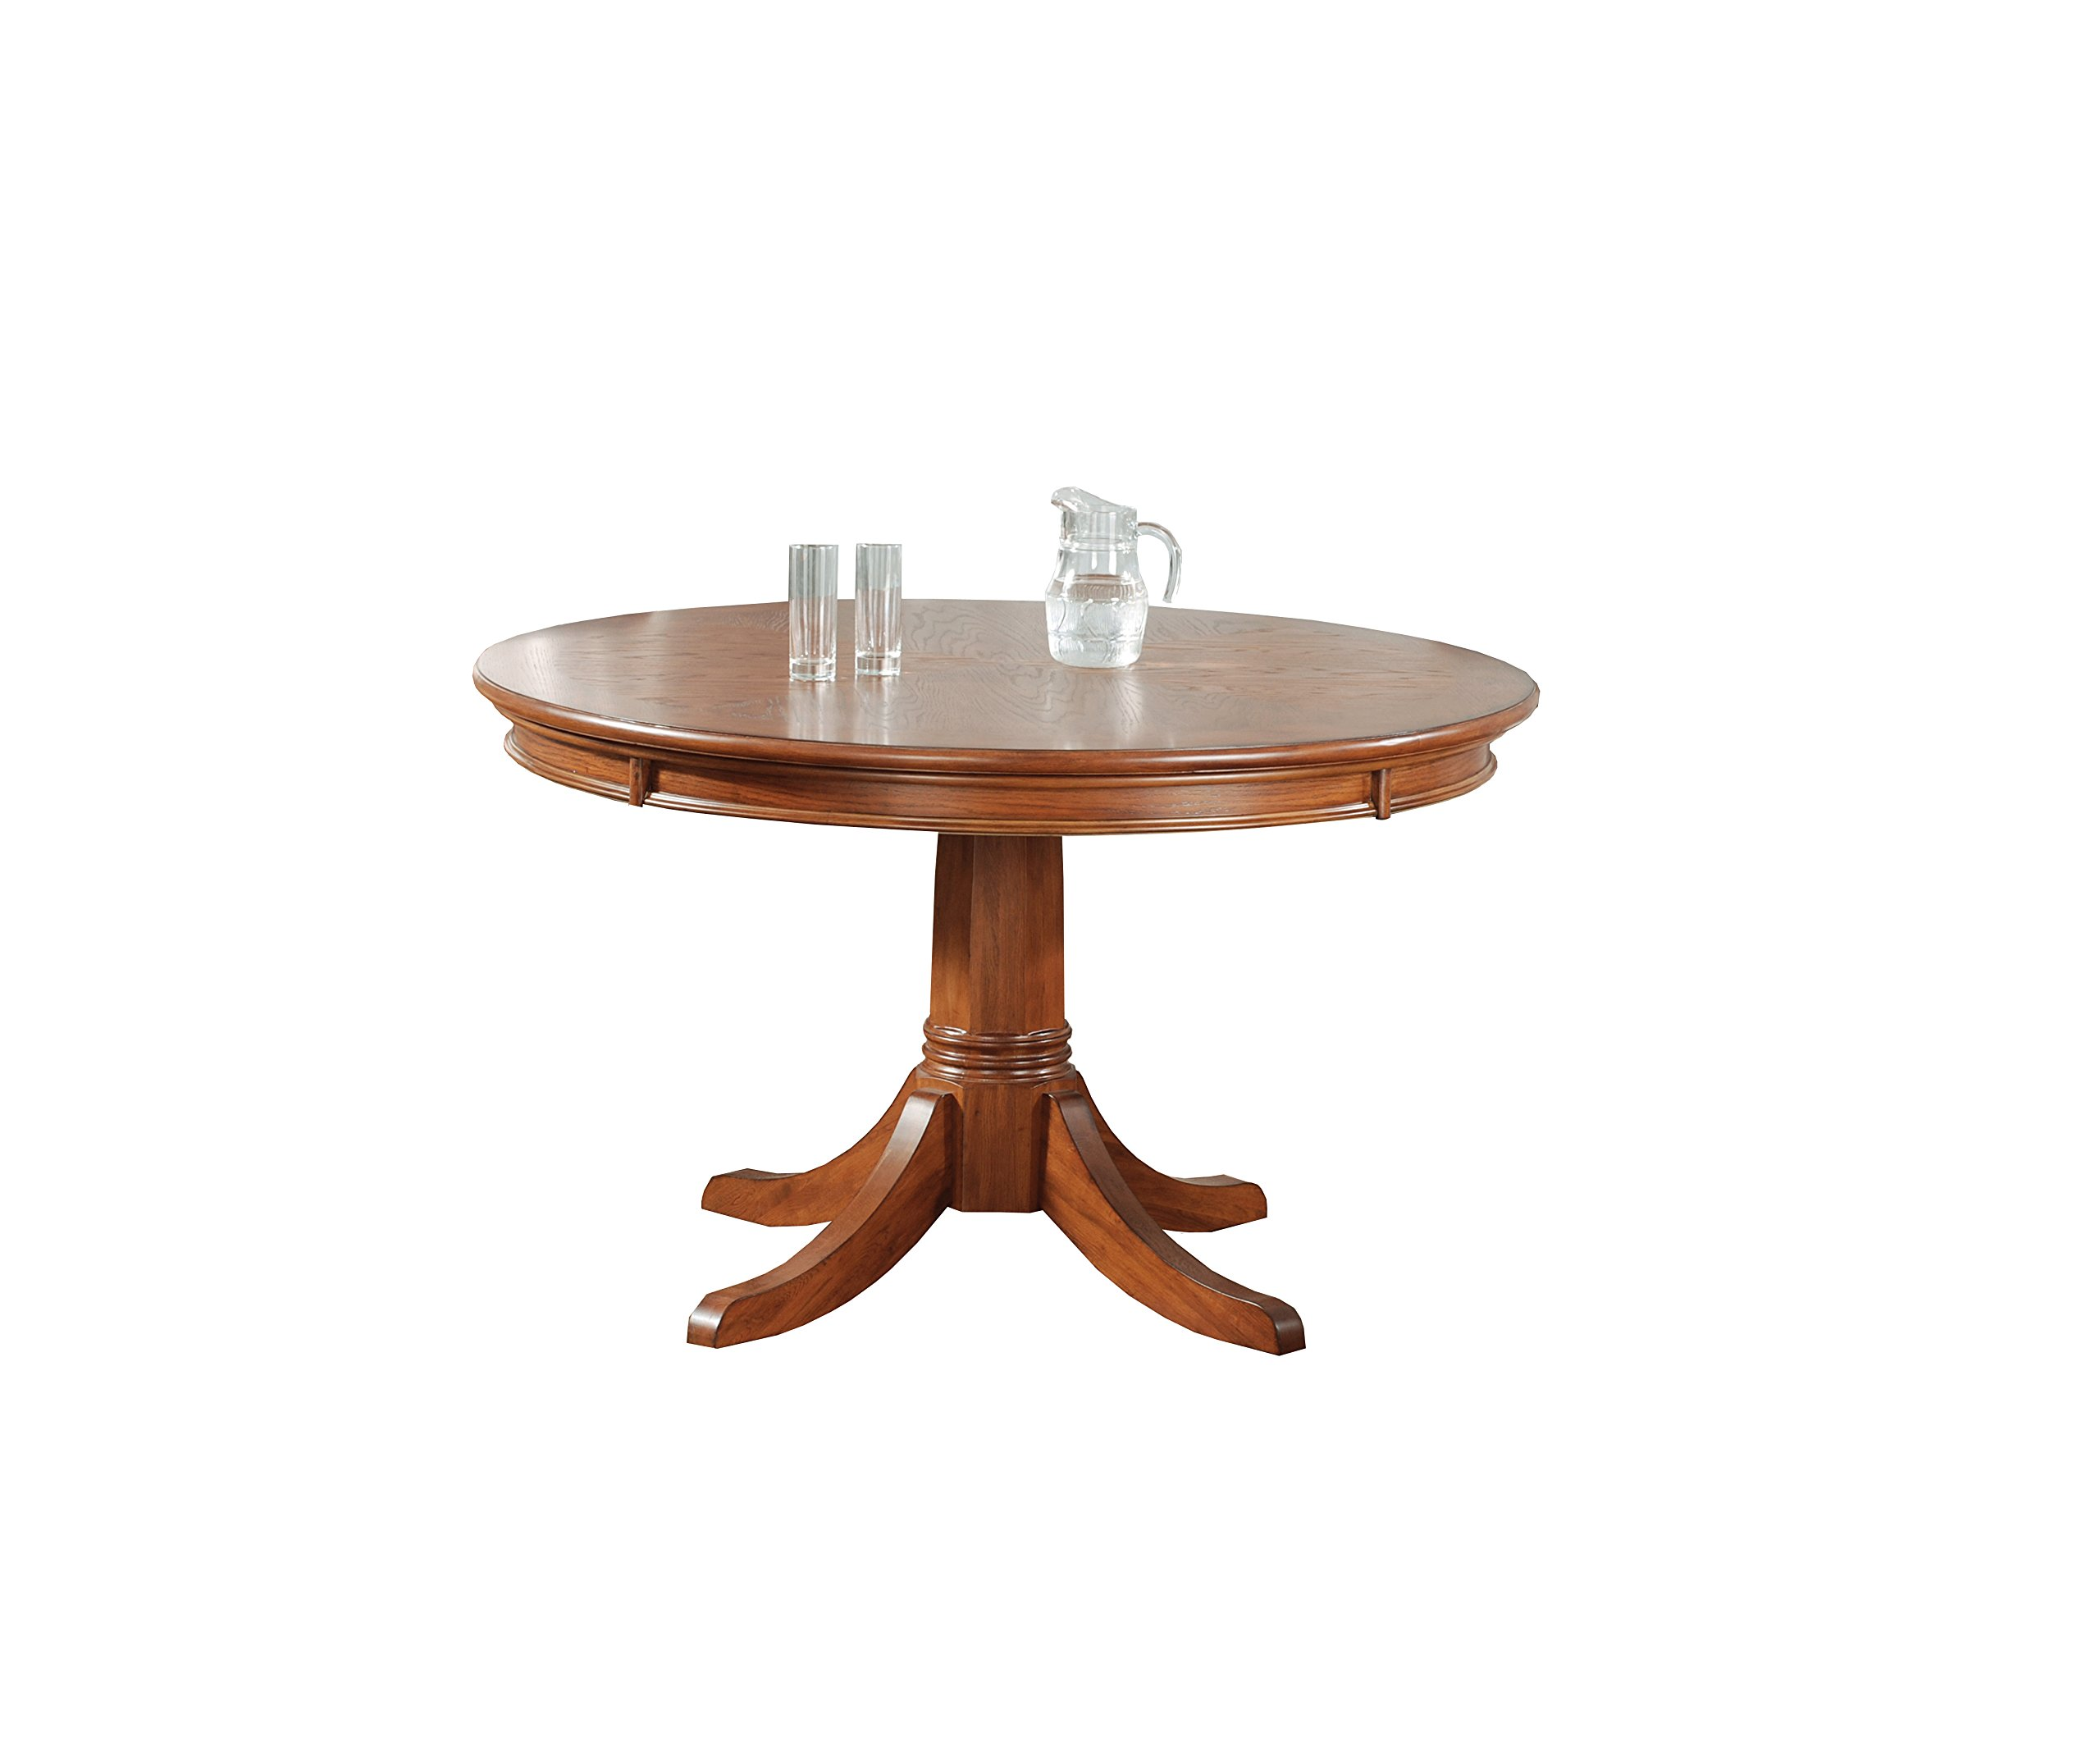 Hillsdale Park View Game Table by Hillsdale Furniture